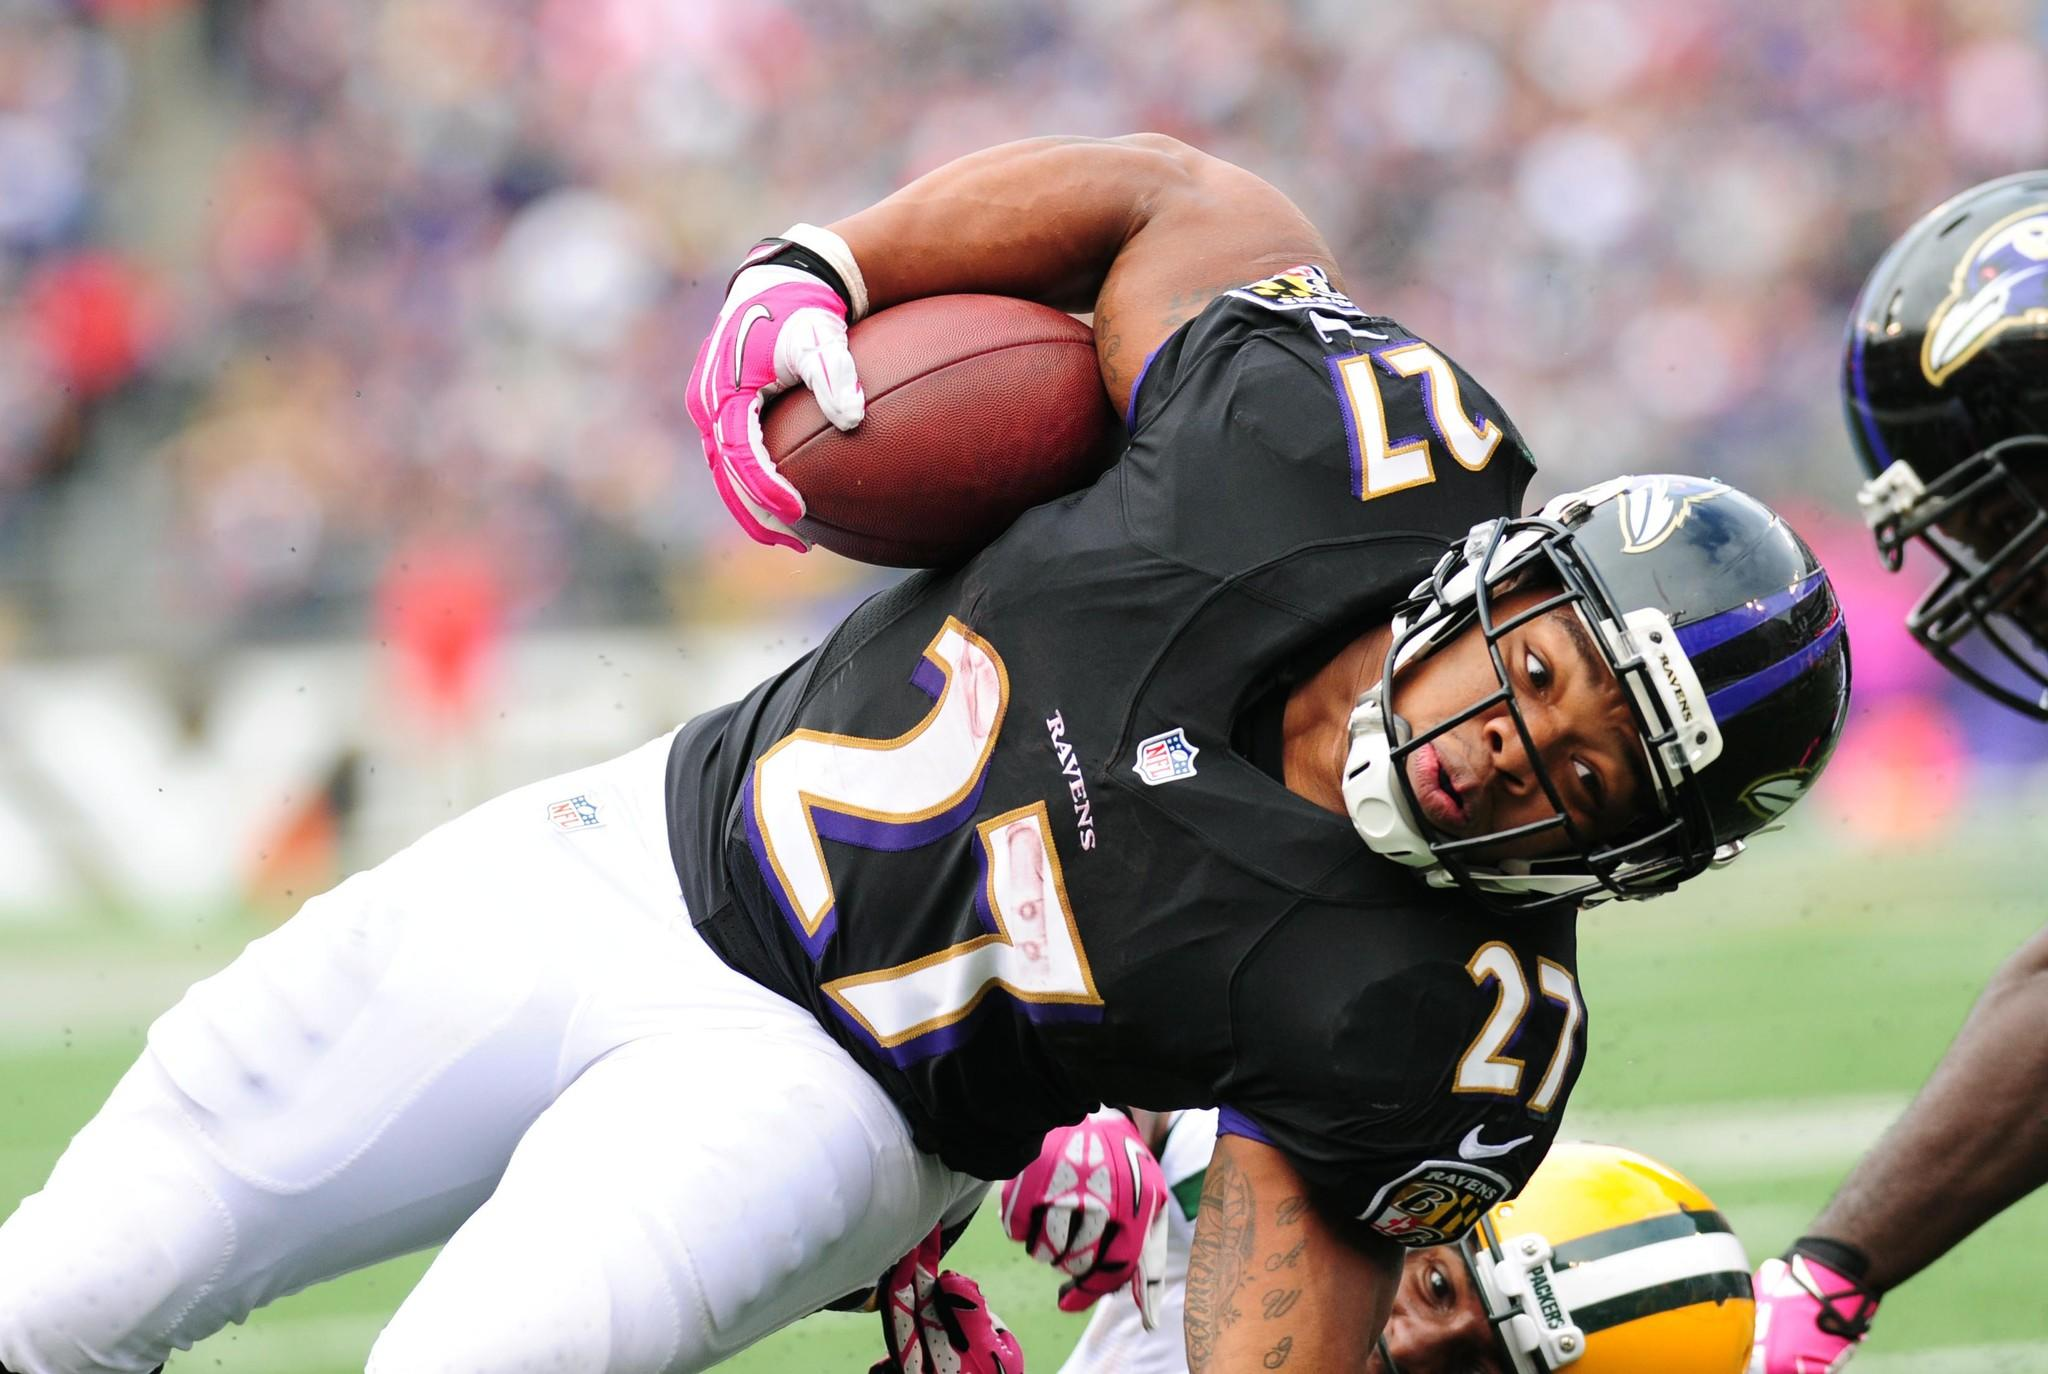 Ray Rice has averaged just 1.53 yards after contact on 259 total touches.